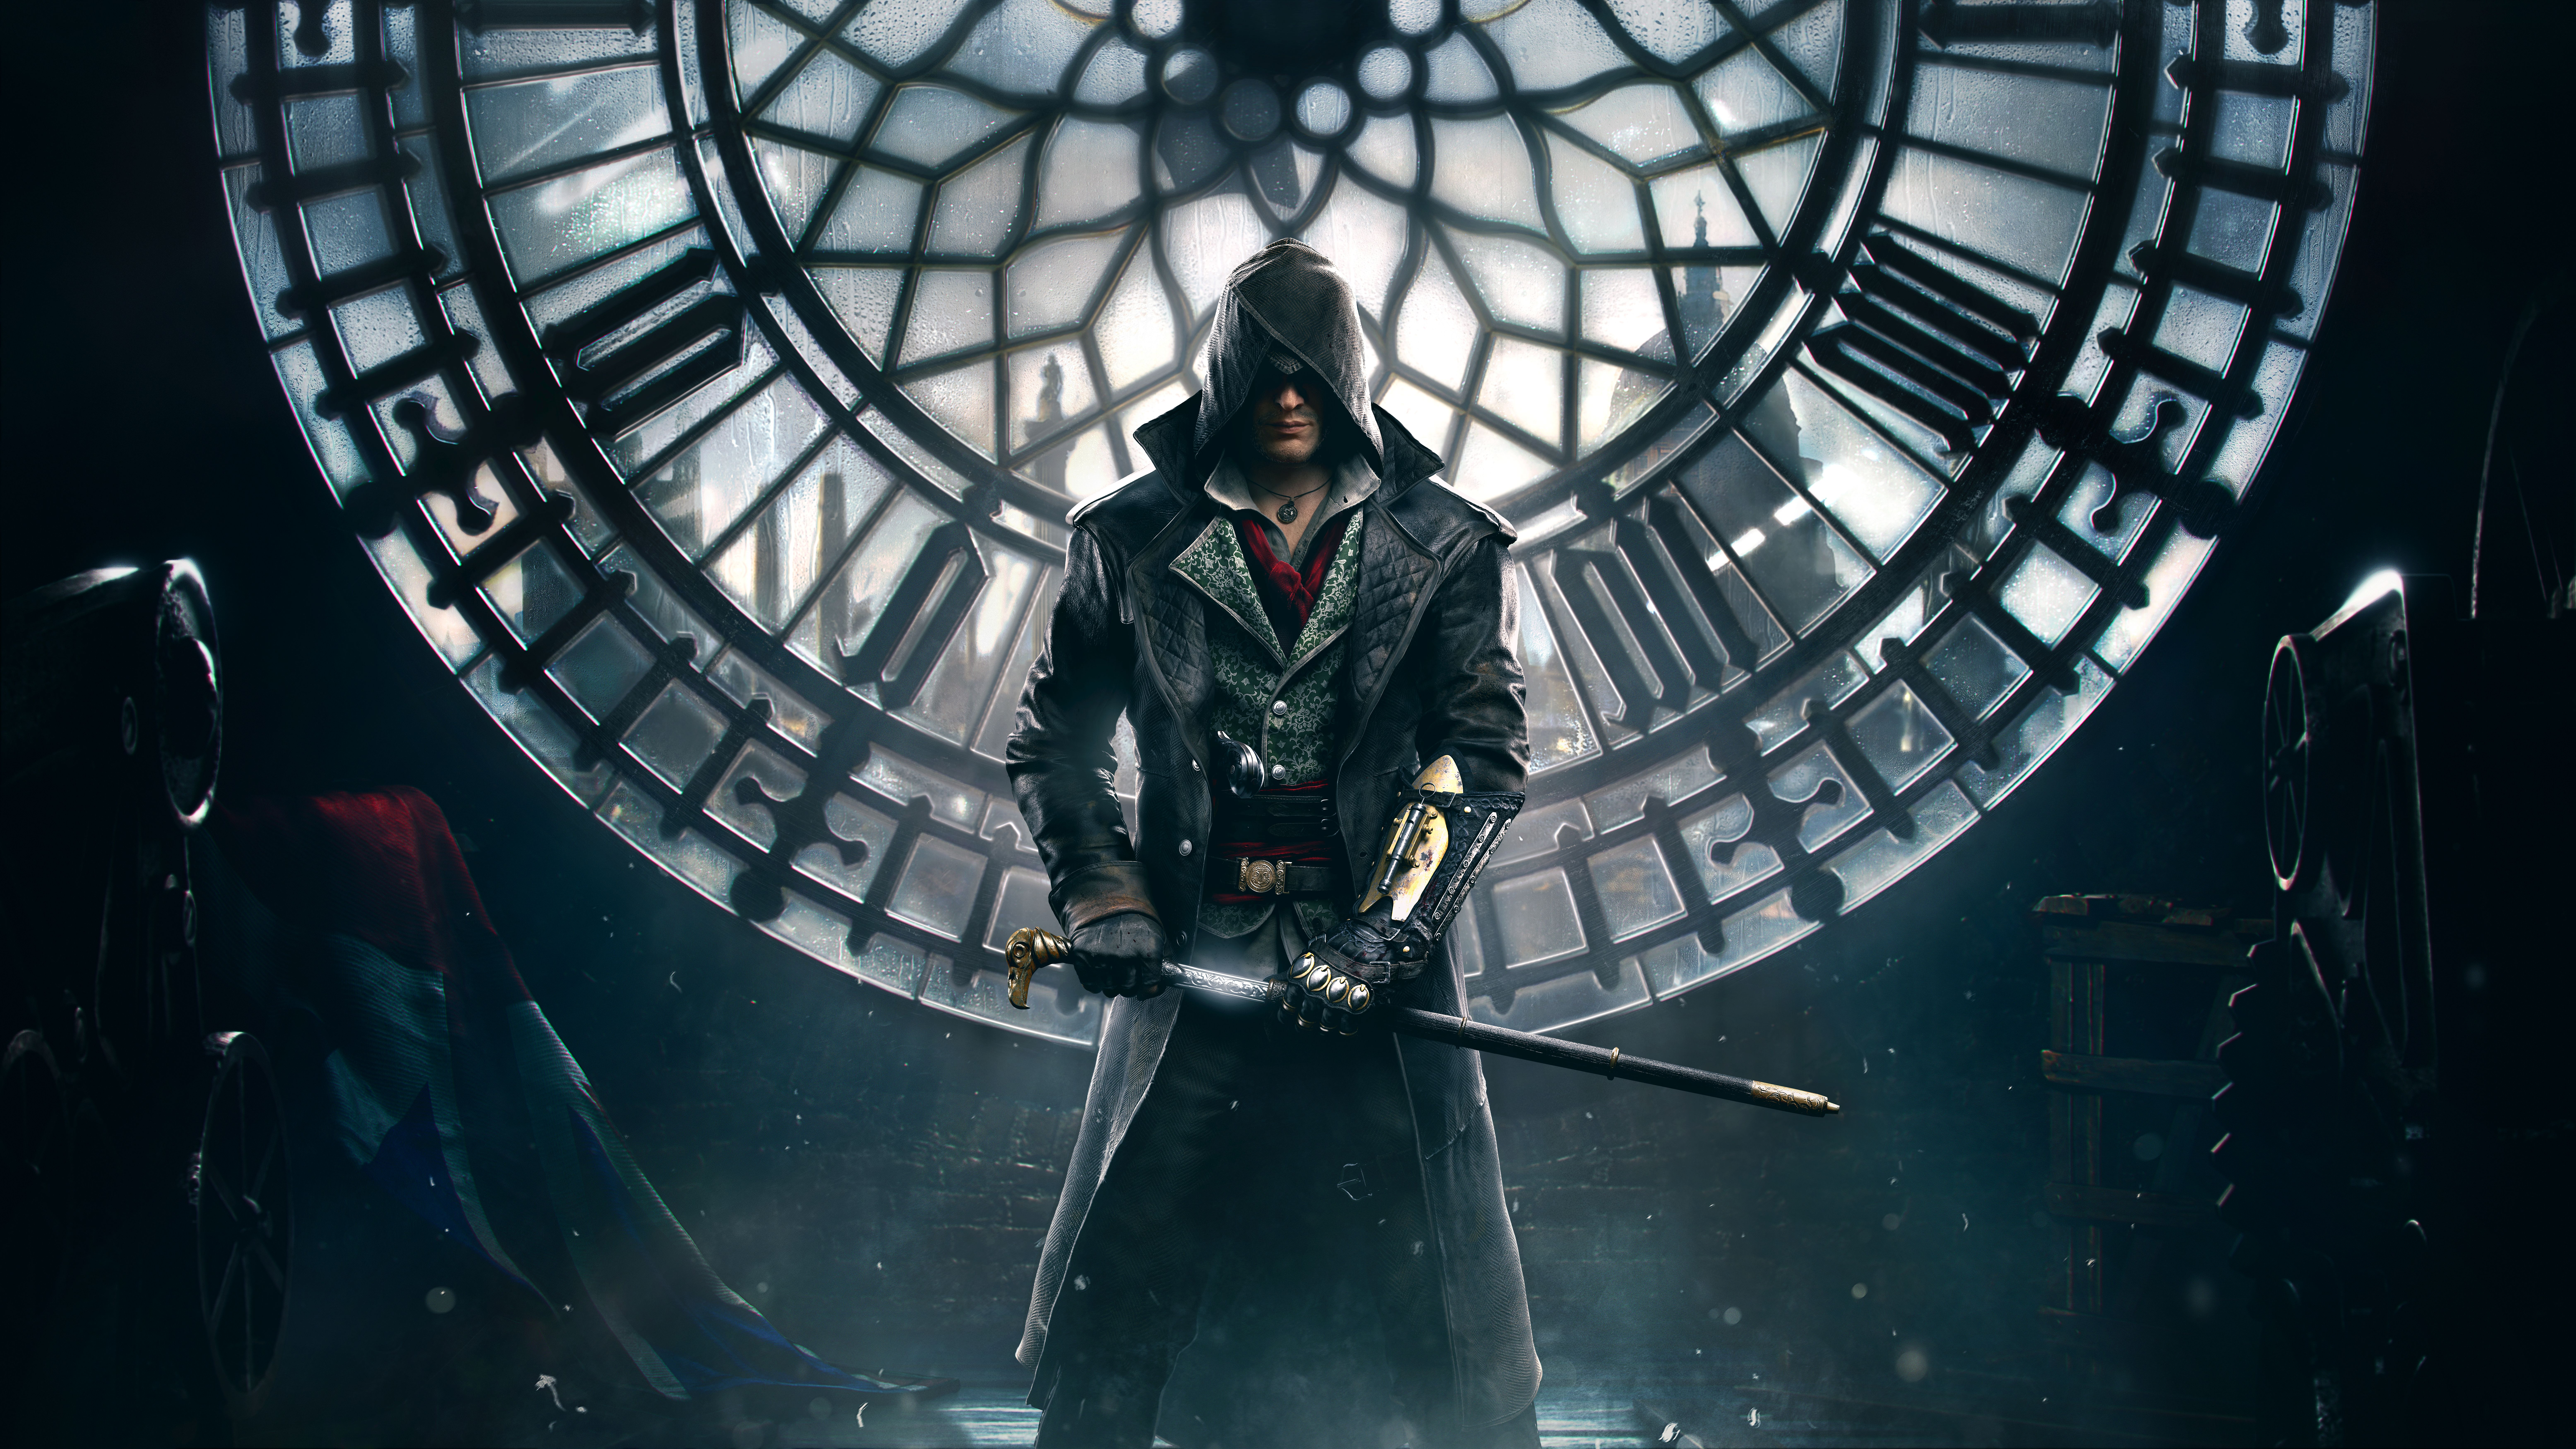 119 Assassins Creed Syndicate HD Wallpapers Background Images 12445x7000